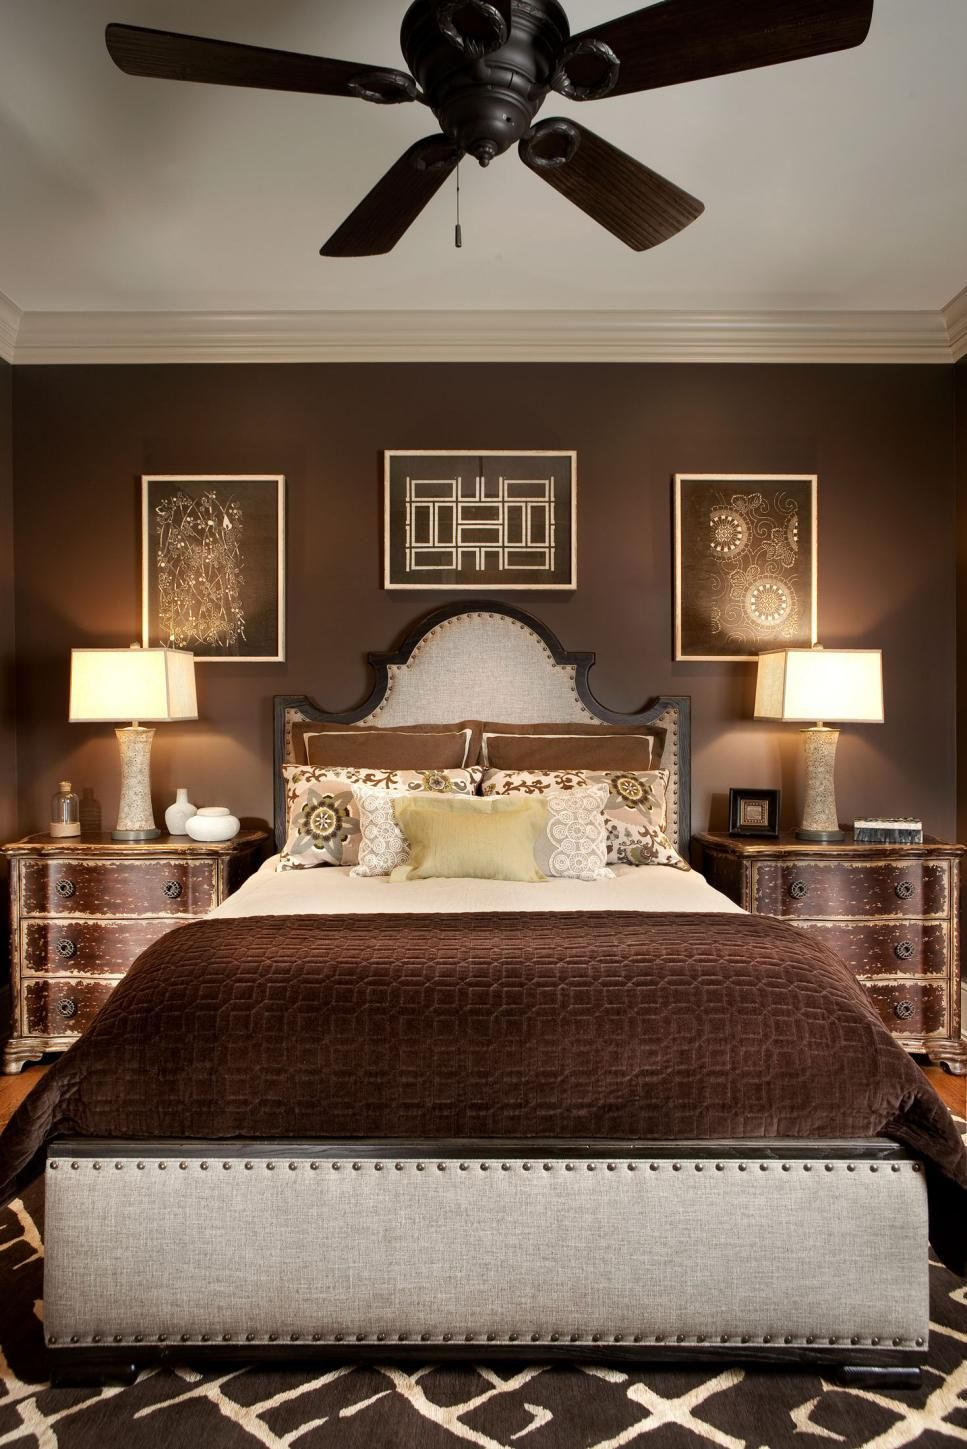 Rich Chocolate Brown Encompasses This Bedroom, Including The Linens, Rug,  Nightstands, Walls